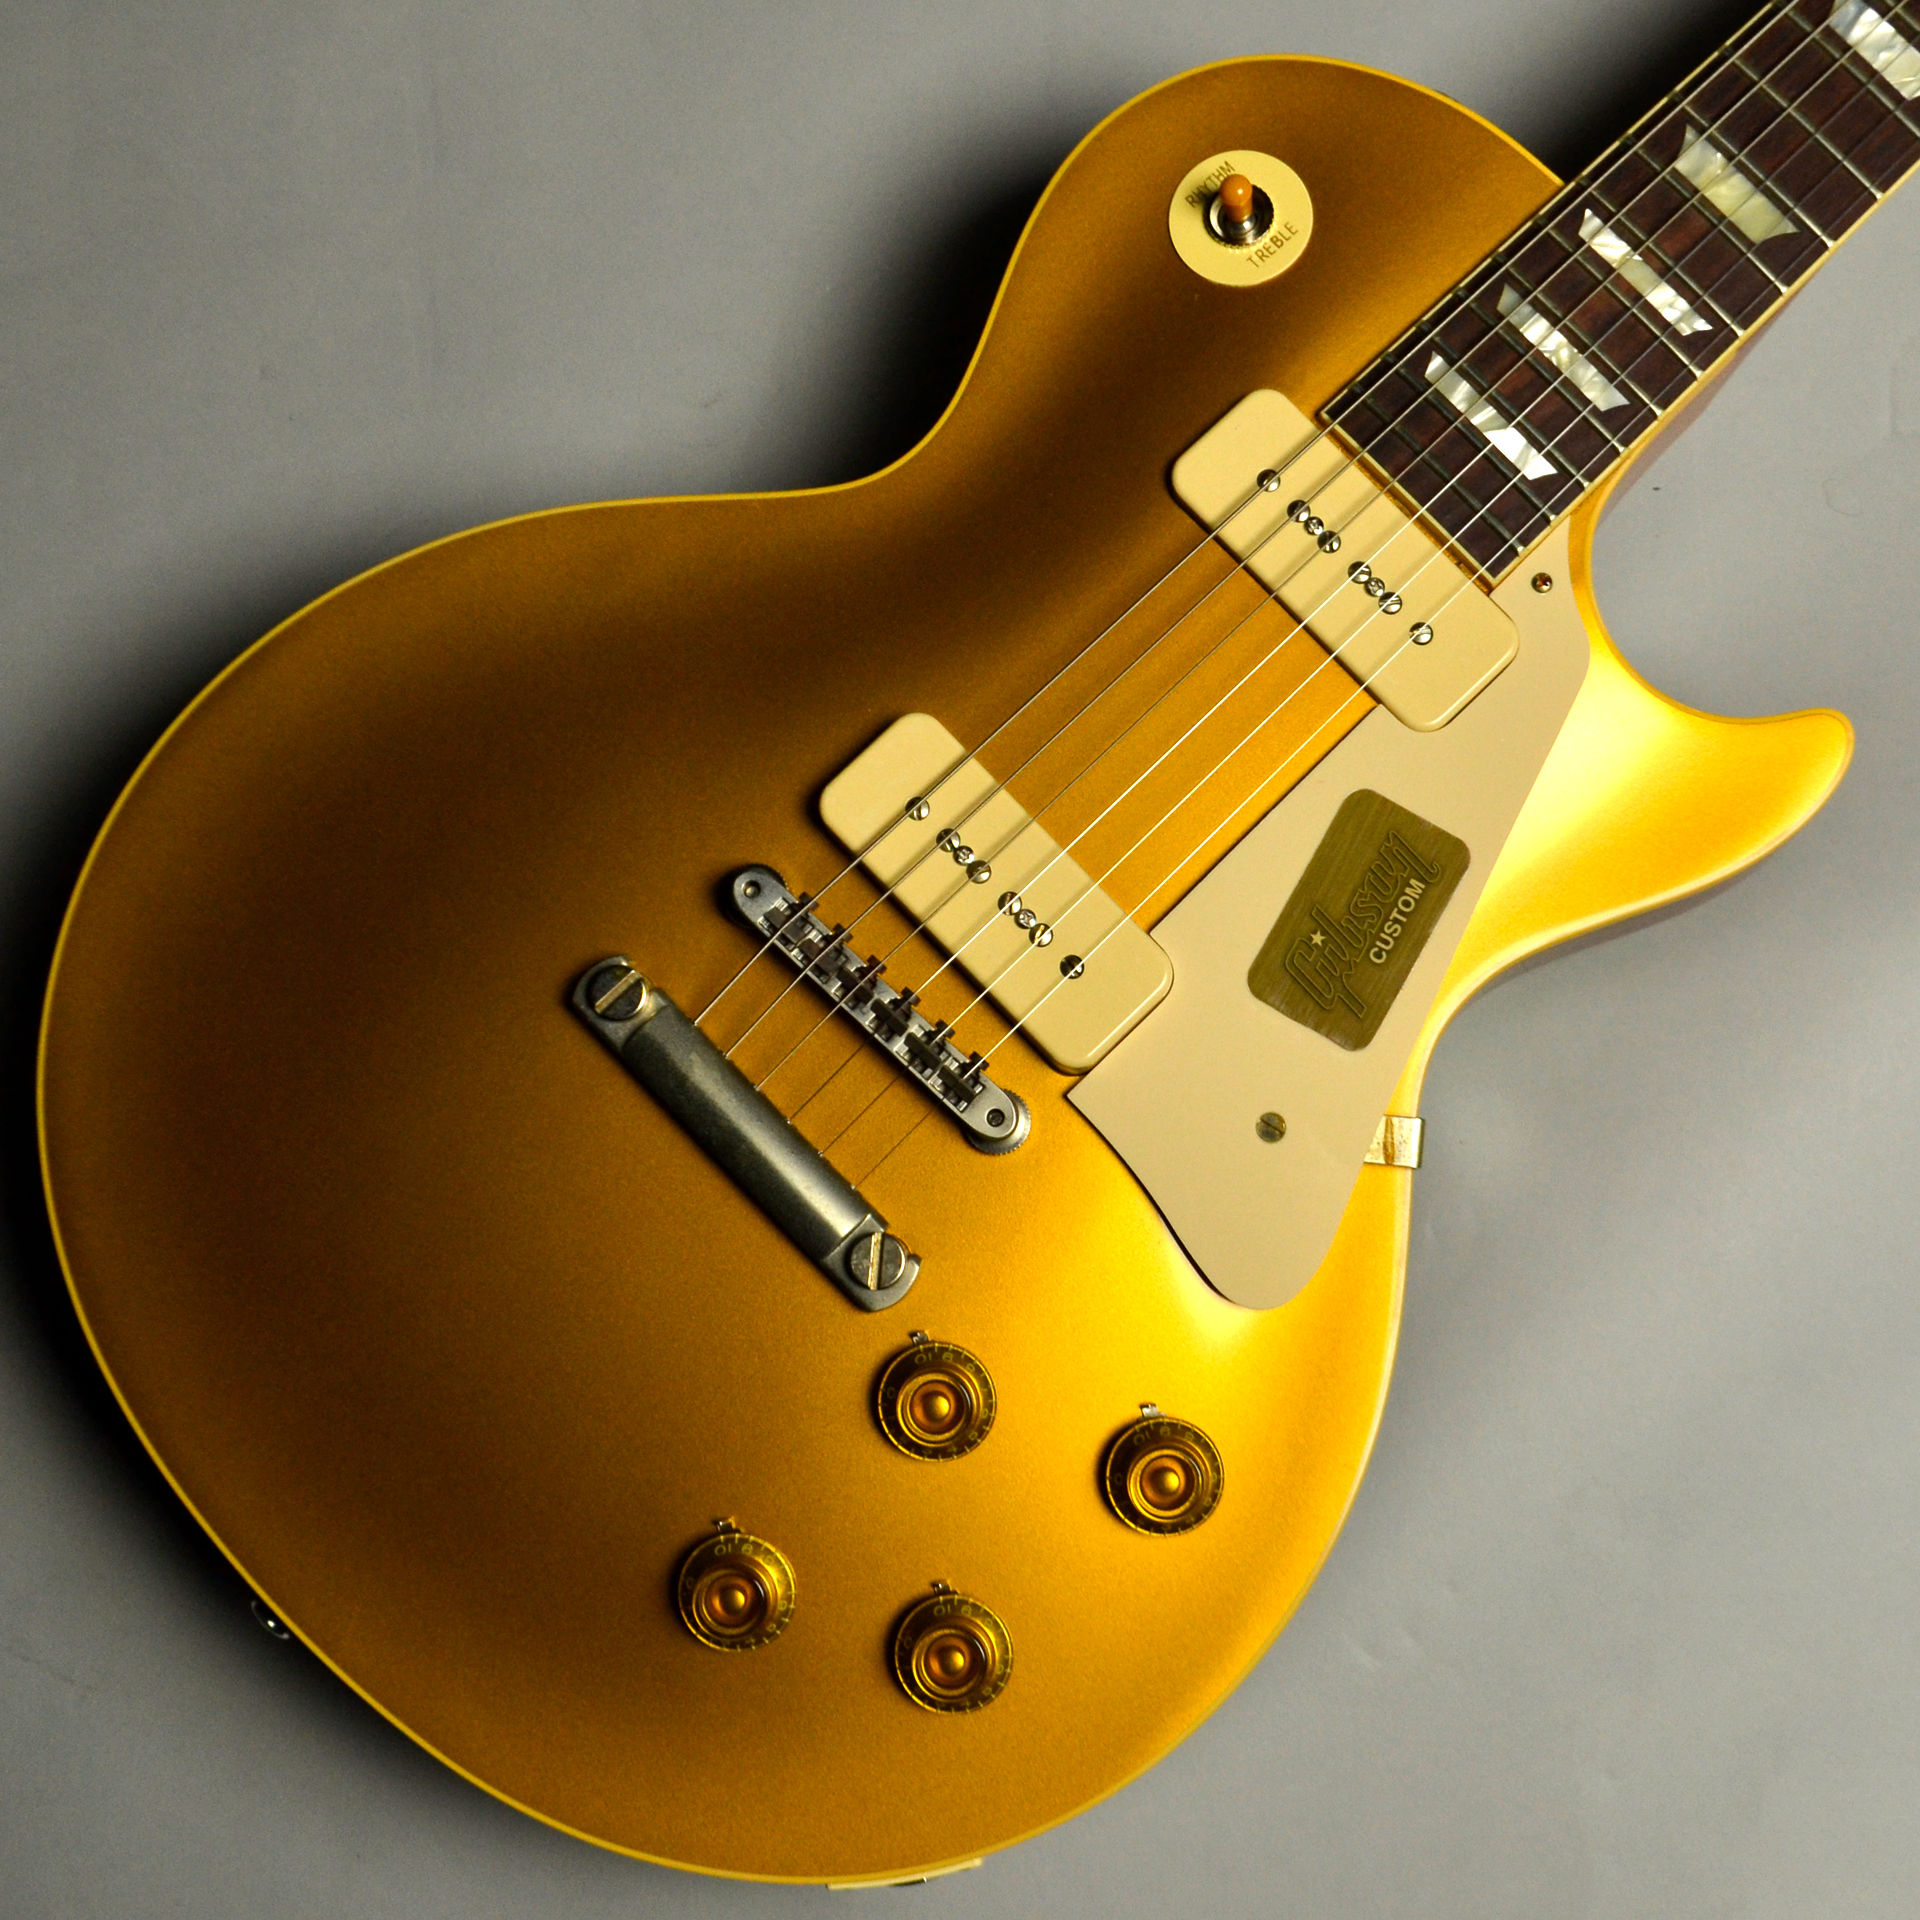 1956 Les Paul Standard Reissue VOS PSL Antique Goldのボディトップ-アップ画像